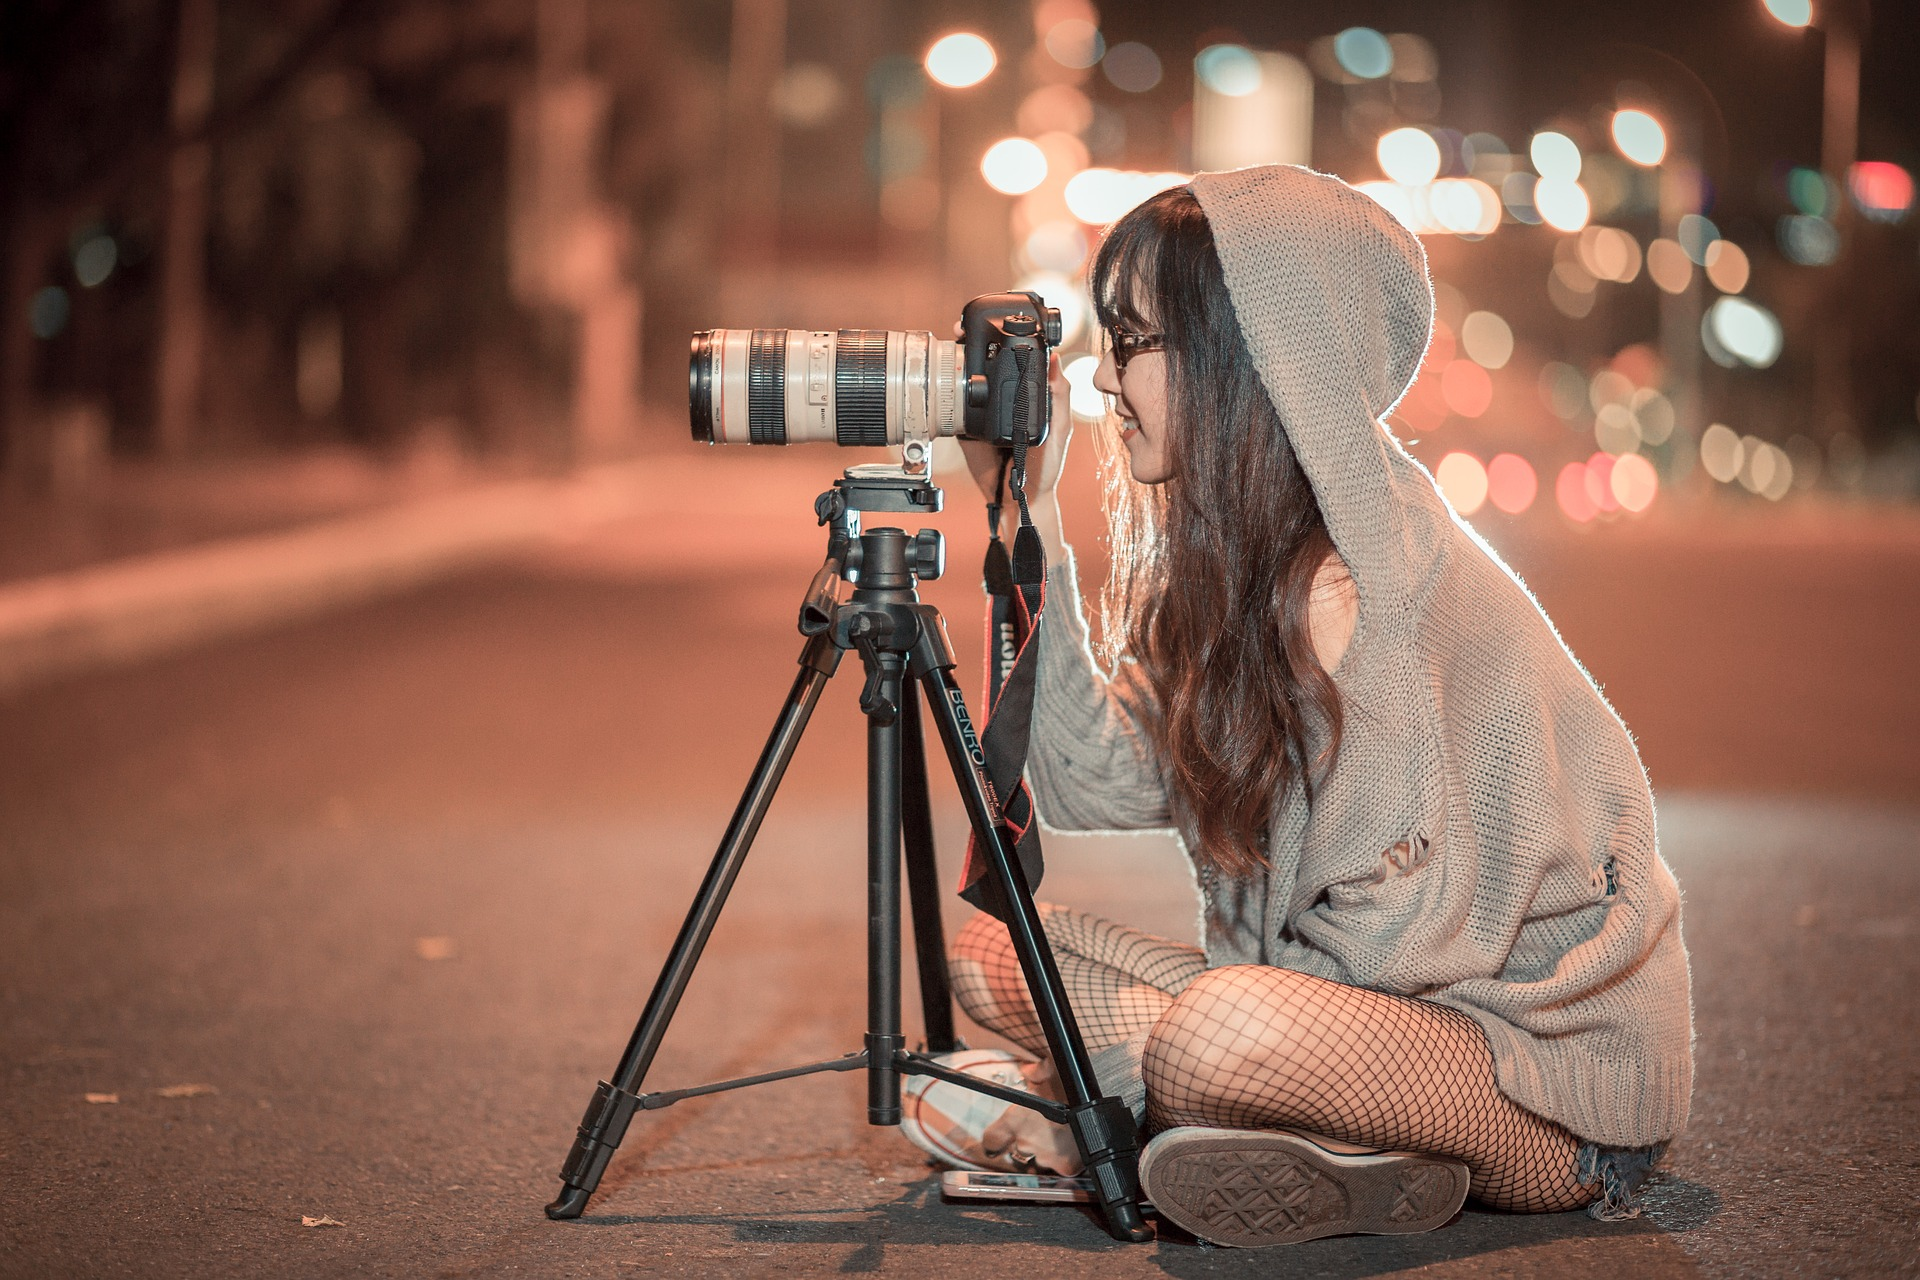 Woman sitting in street with camera taking pictures